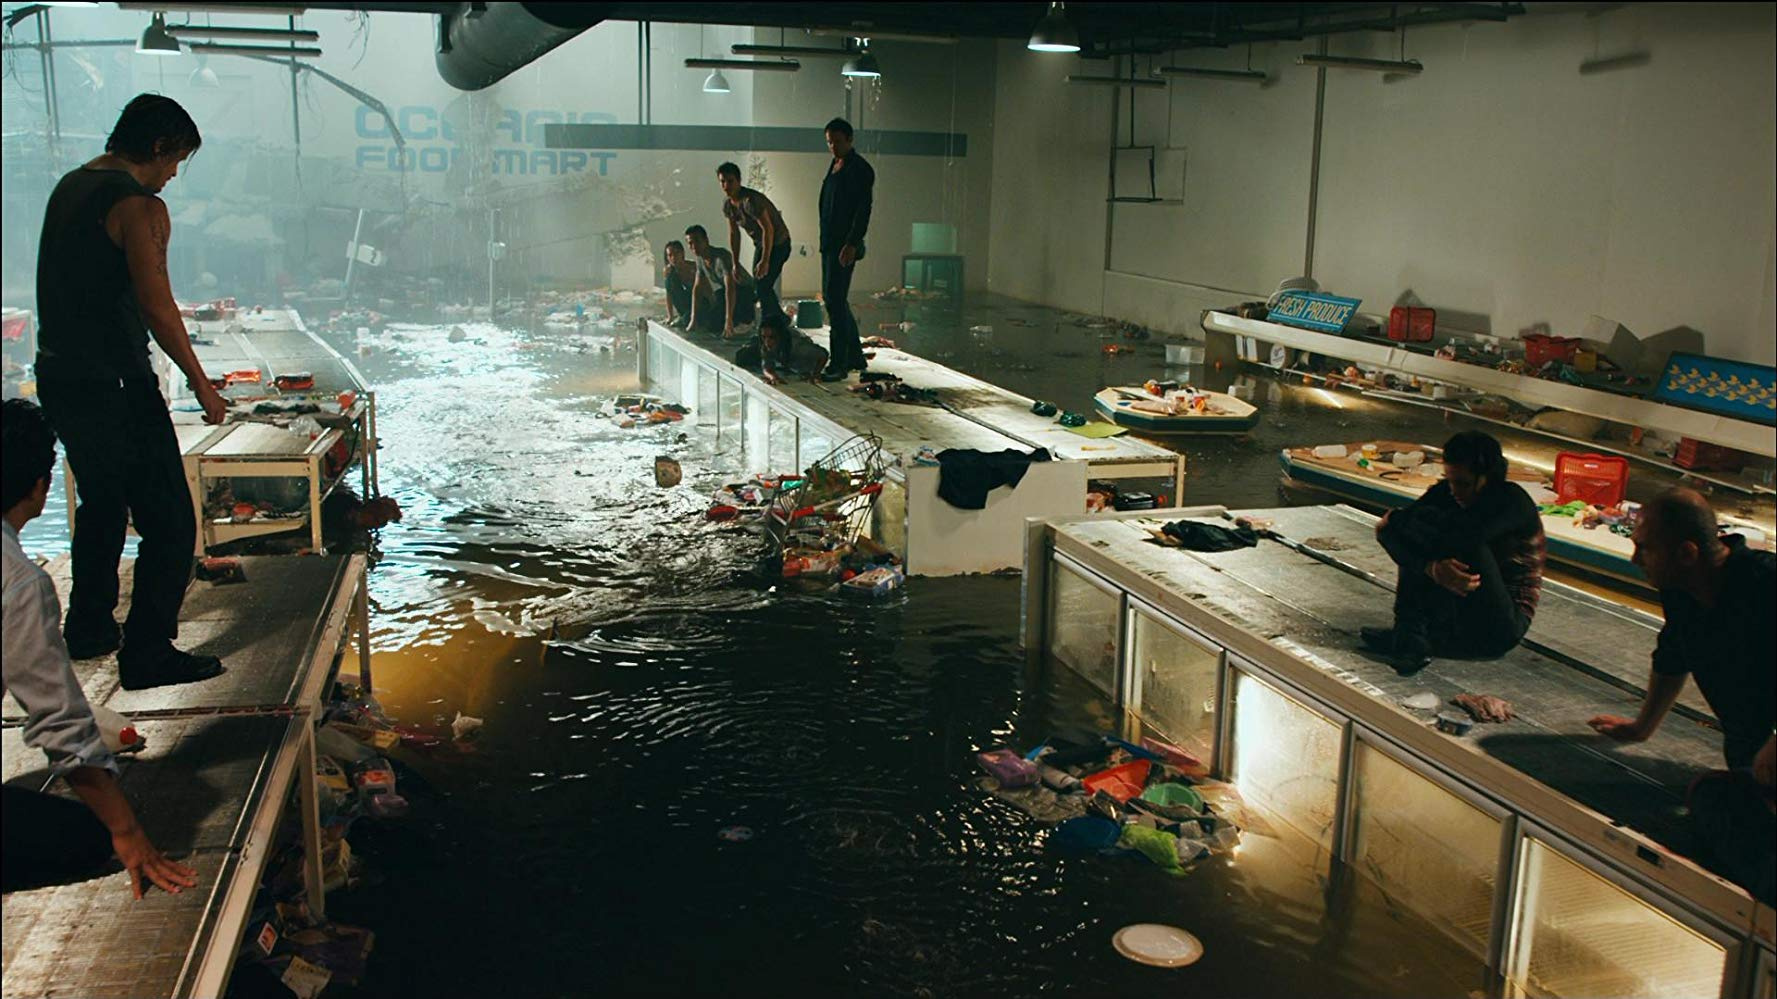 Shark prowling the aisles of a flooded supermarket in Bait (2012)